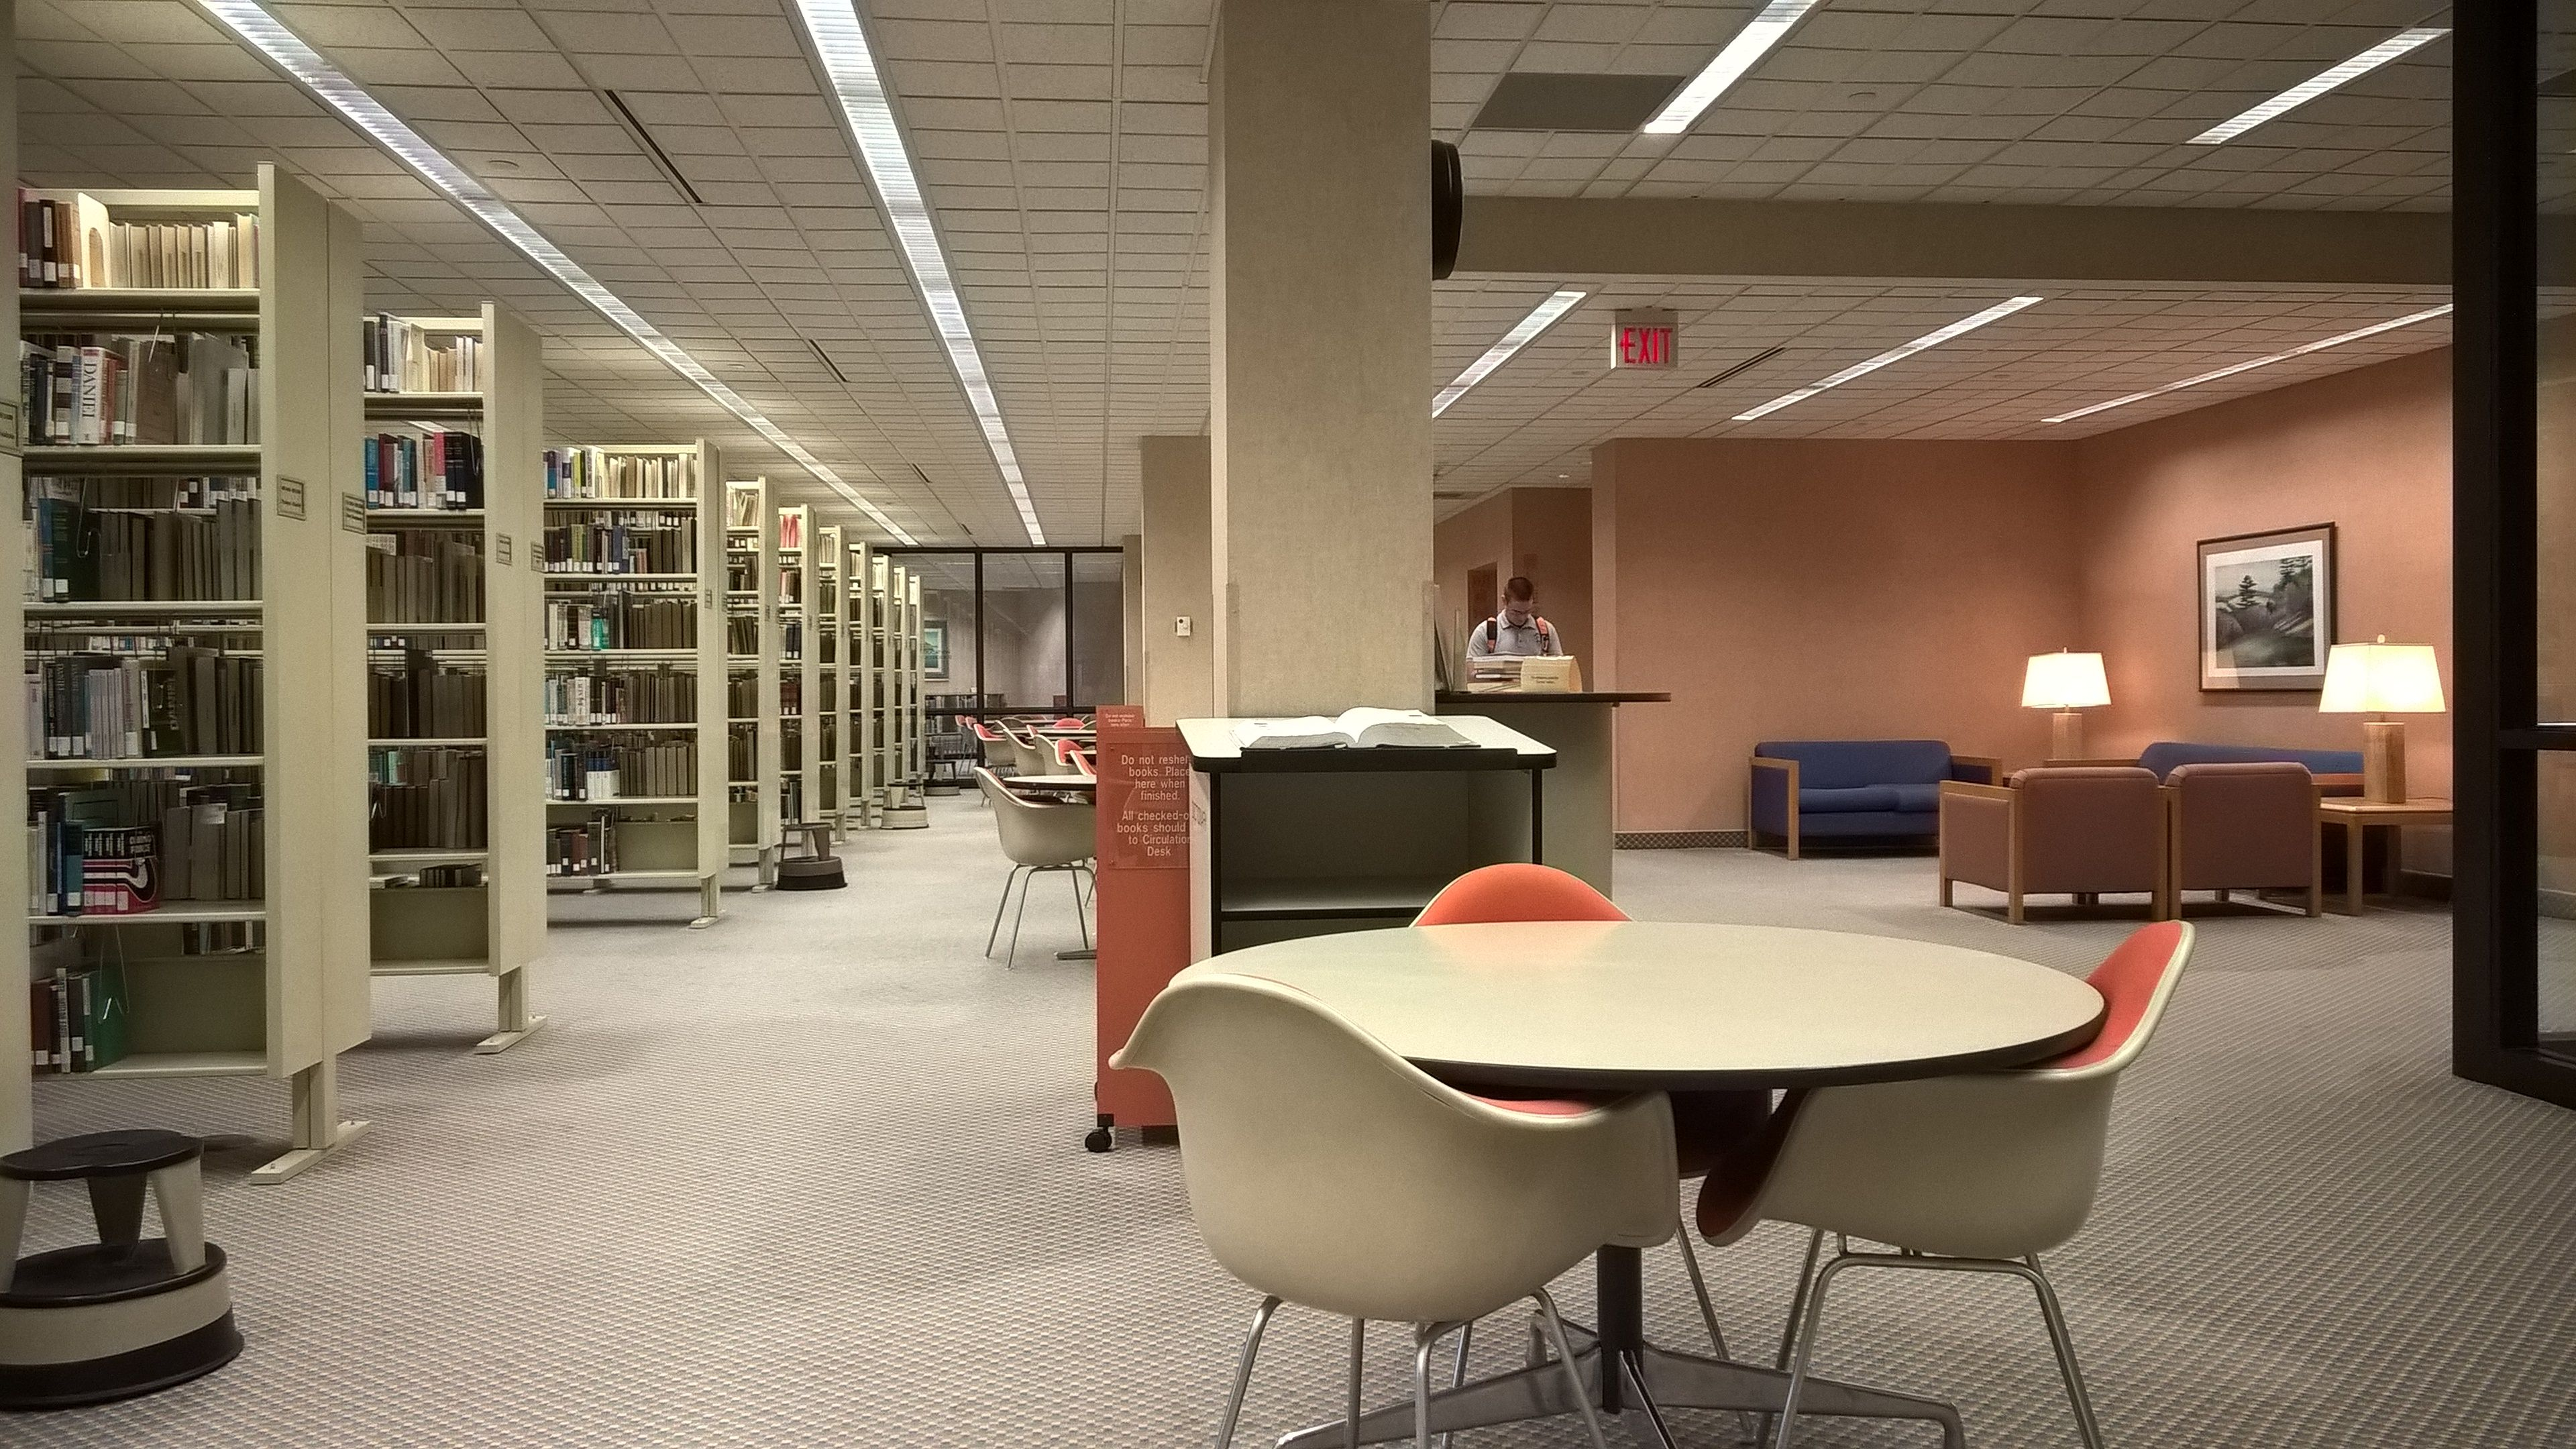 Interior Of The Pensacola Christian College Library 3rd Floor